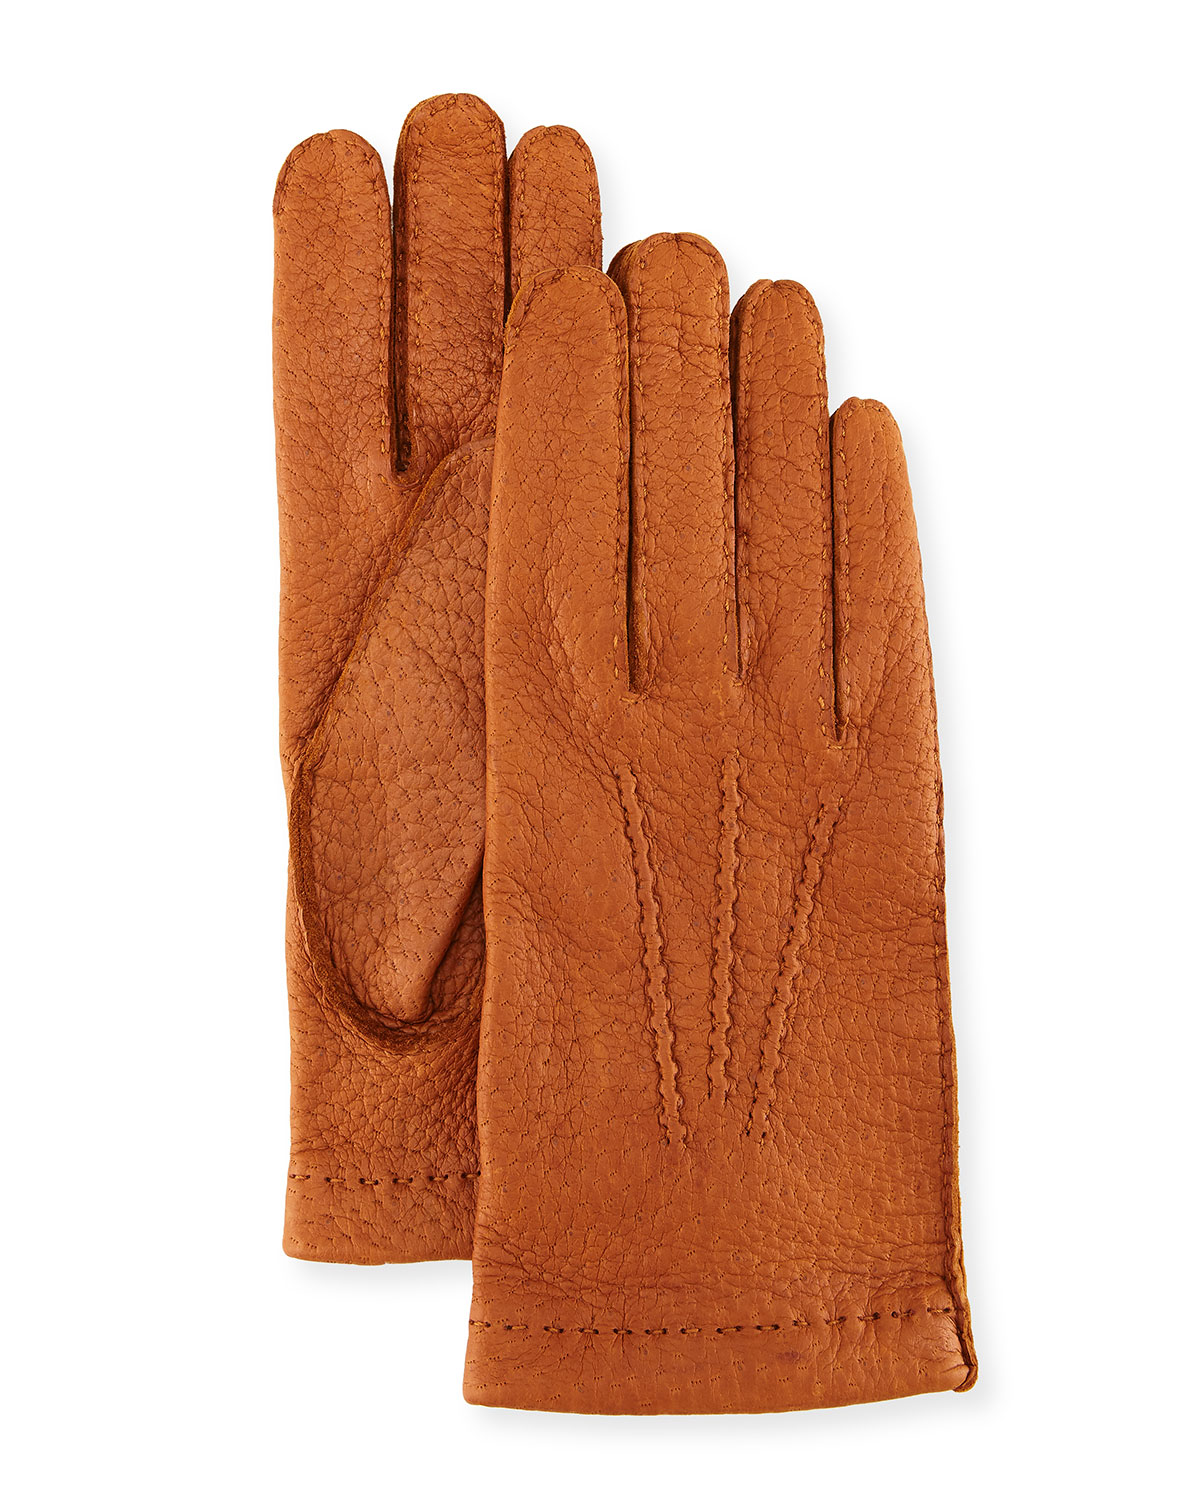 e5eef065b69a9 Hestra Gloves Peccary Hand-Sewn Leather Unlined Gloves | Neiman Marcus